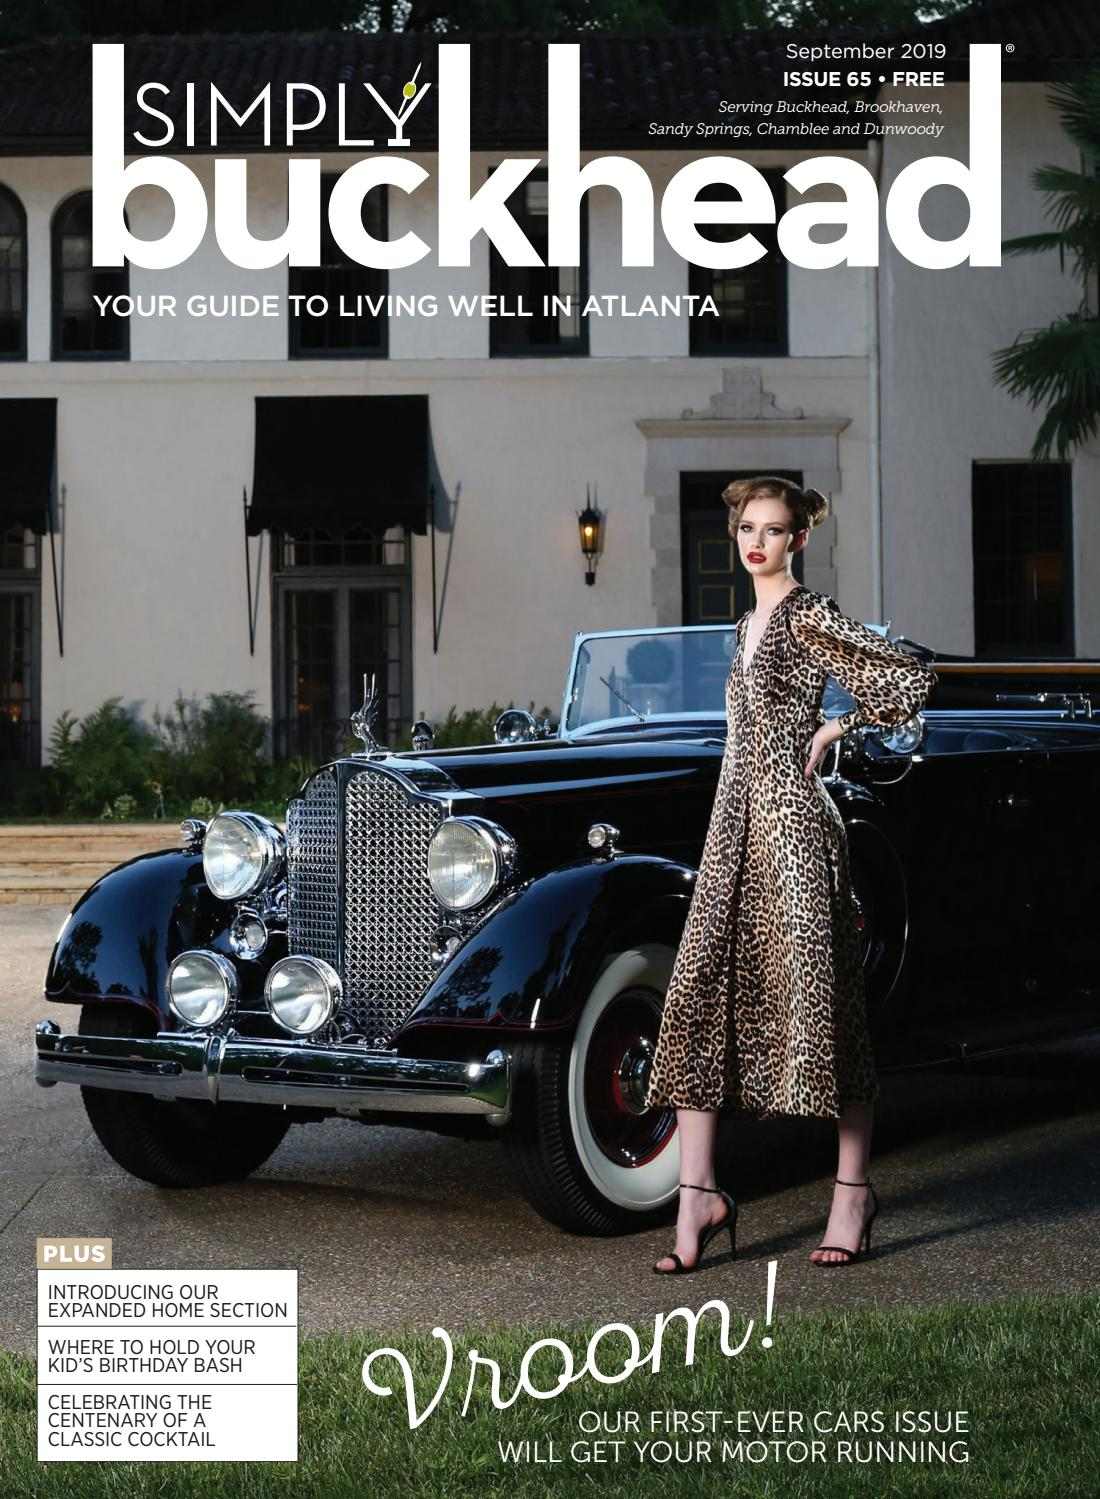 Simply Buckhead September 2019 by Simply Buckhead - issuu